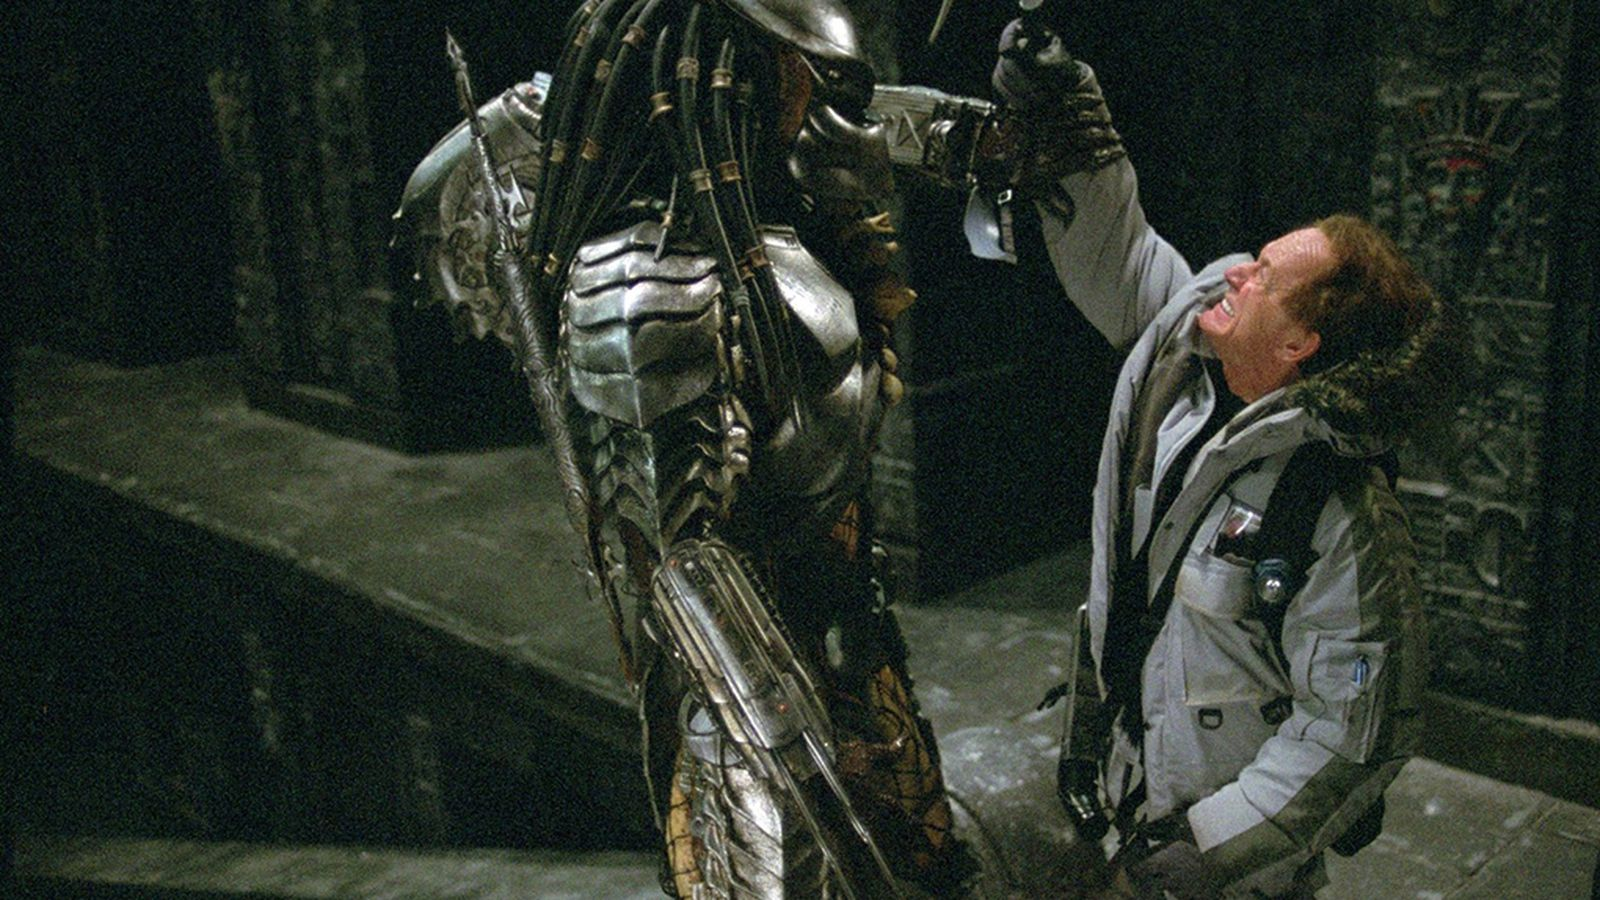 The Predator set for March 2nd, 2018, Gambit and Alien ...